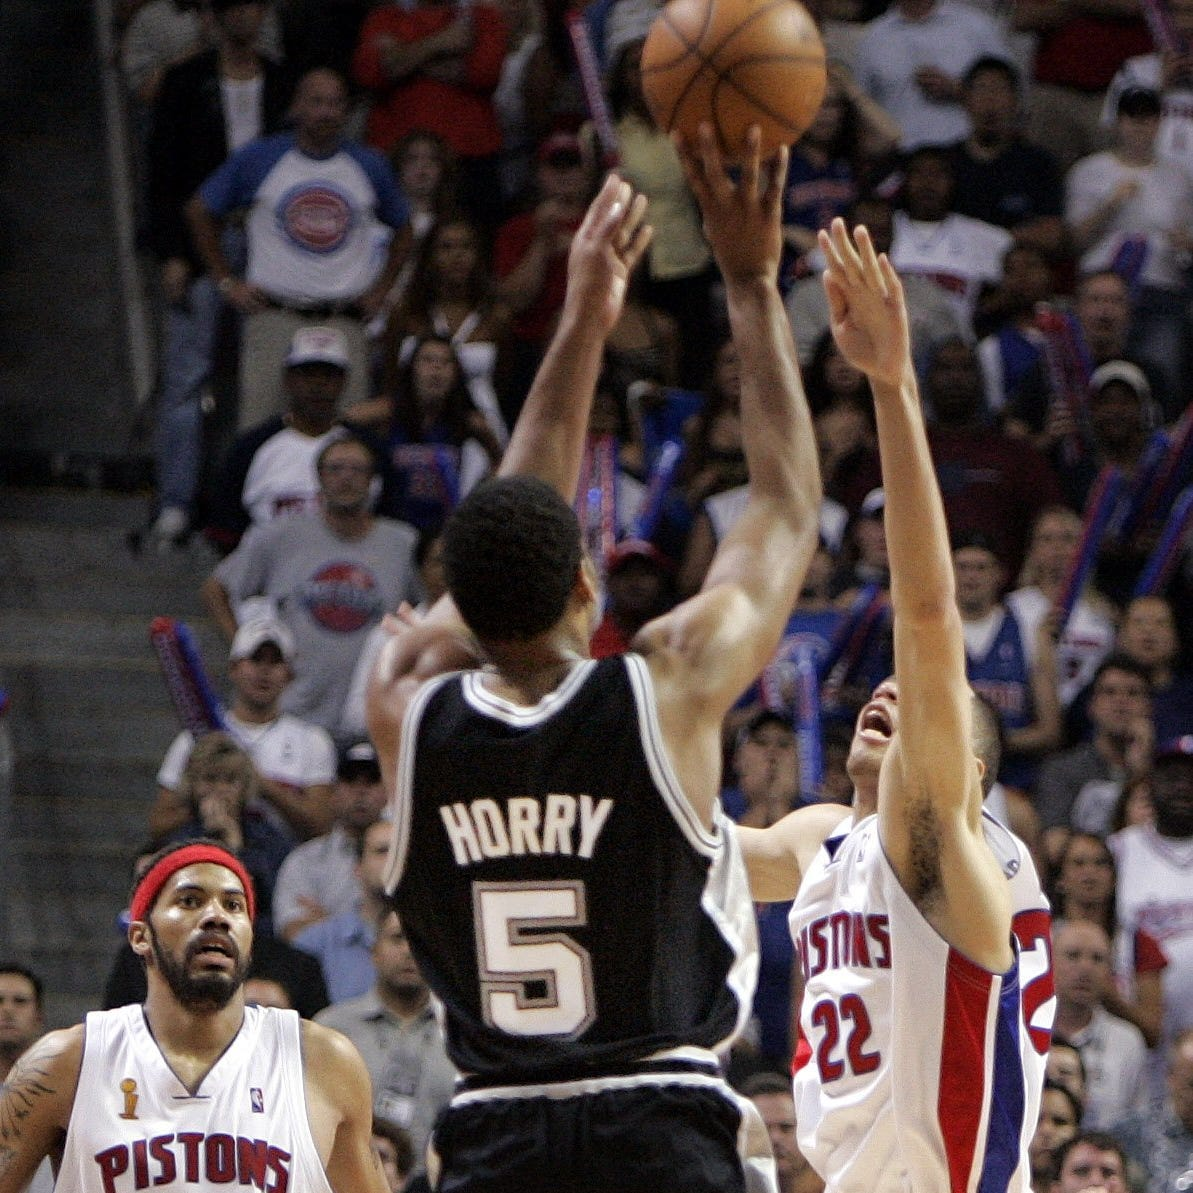 Chauncey Billups: Larry Brown choked in Game 5 of 2005 NBA Finals